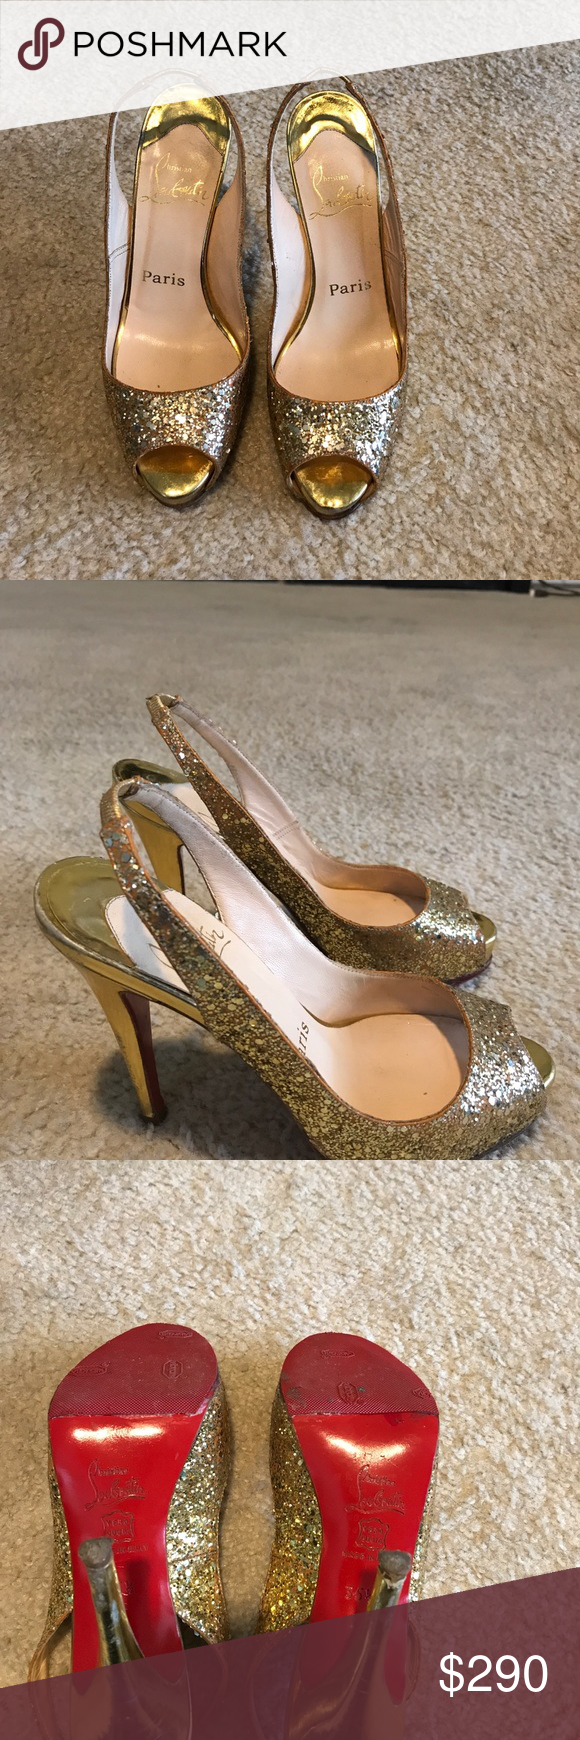 Christian Louboutin Gold Prive Slingback heels Gold glitter slingback style heels with some wear but lots of life left! See photos for shoe details... very comfortable and includes storage bag. No box available. Christian Louboutin Shoes Heels